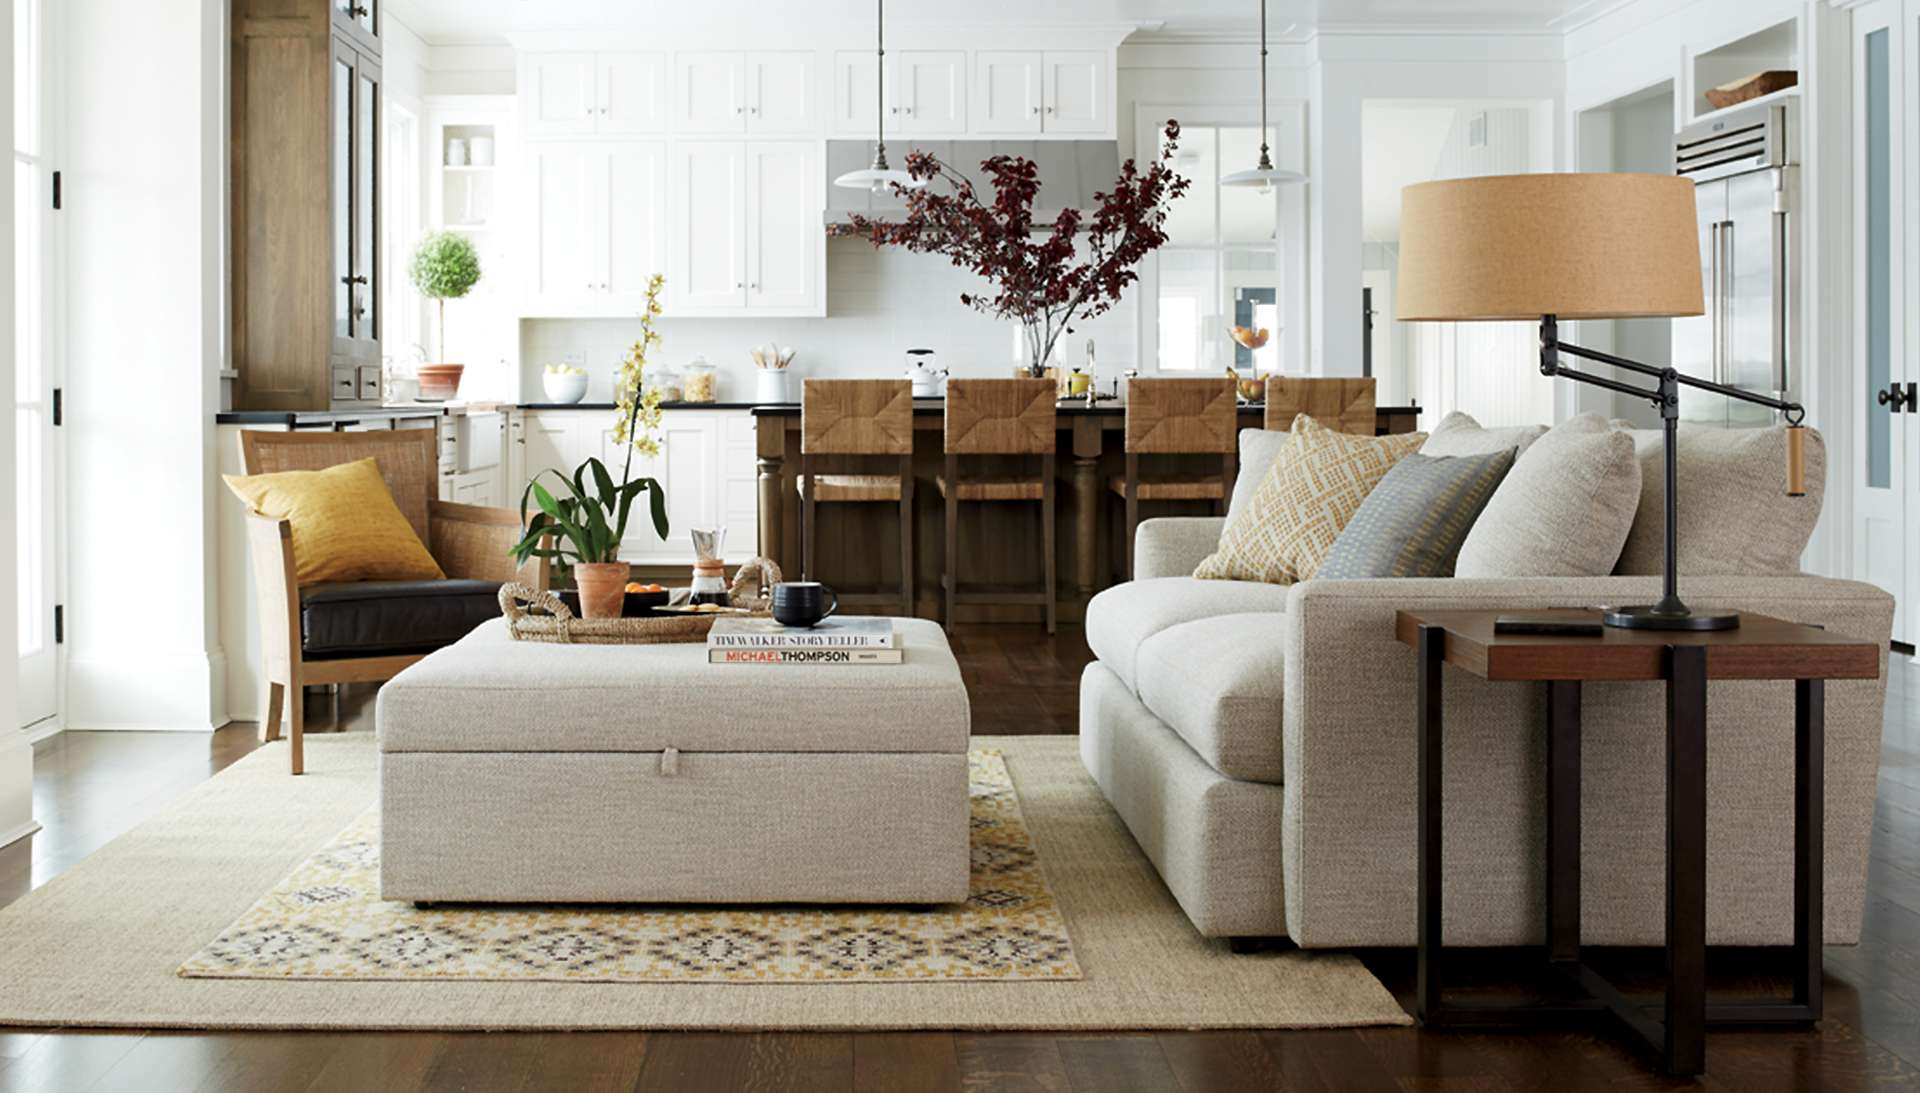 Living Room featuring Lounge sofa collection